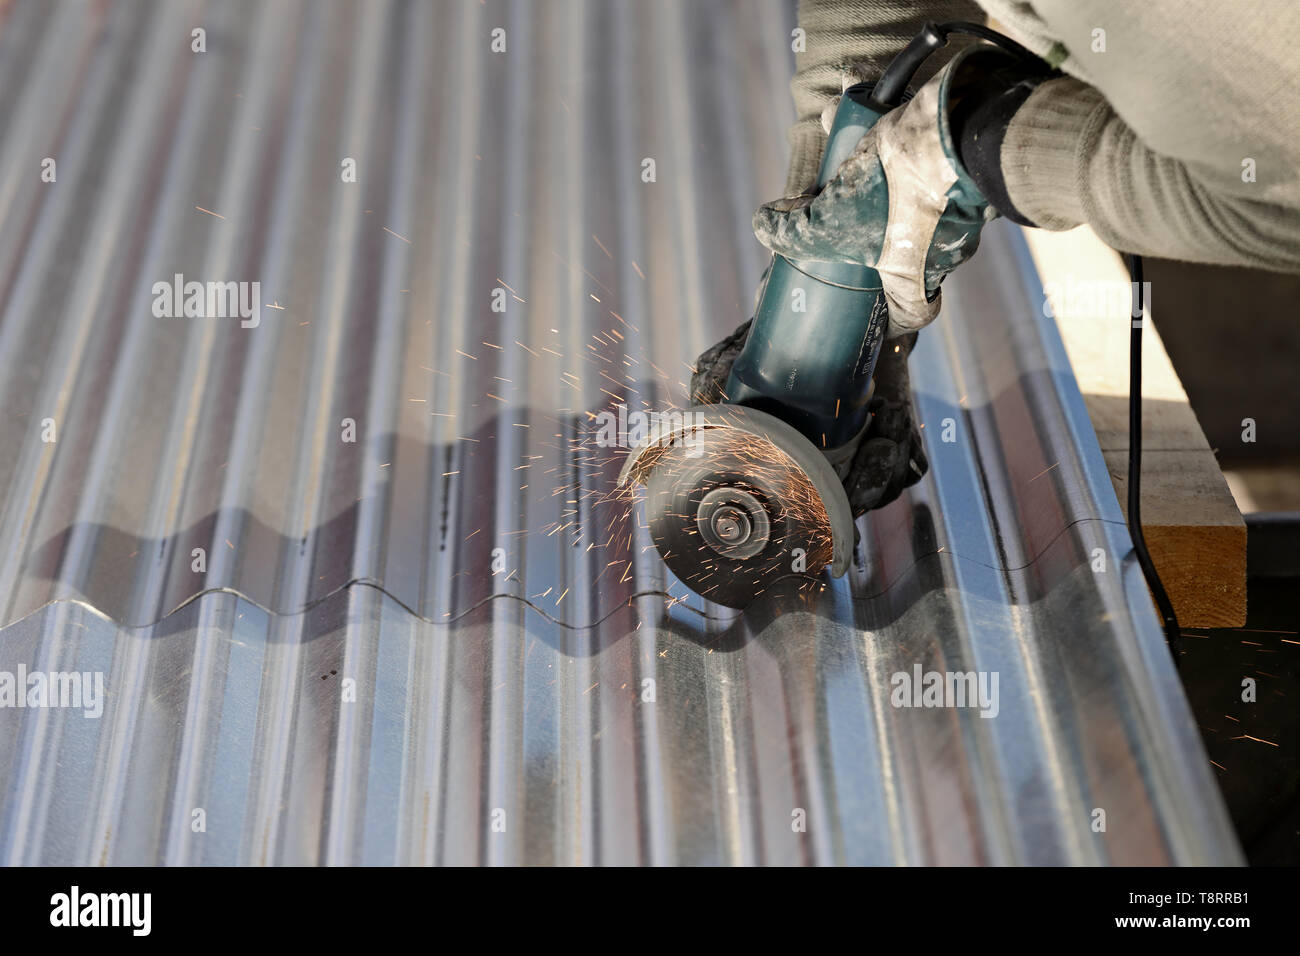 A man cutting steel plate with an angle grinder - Stock Image